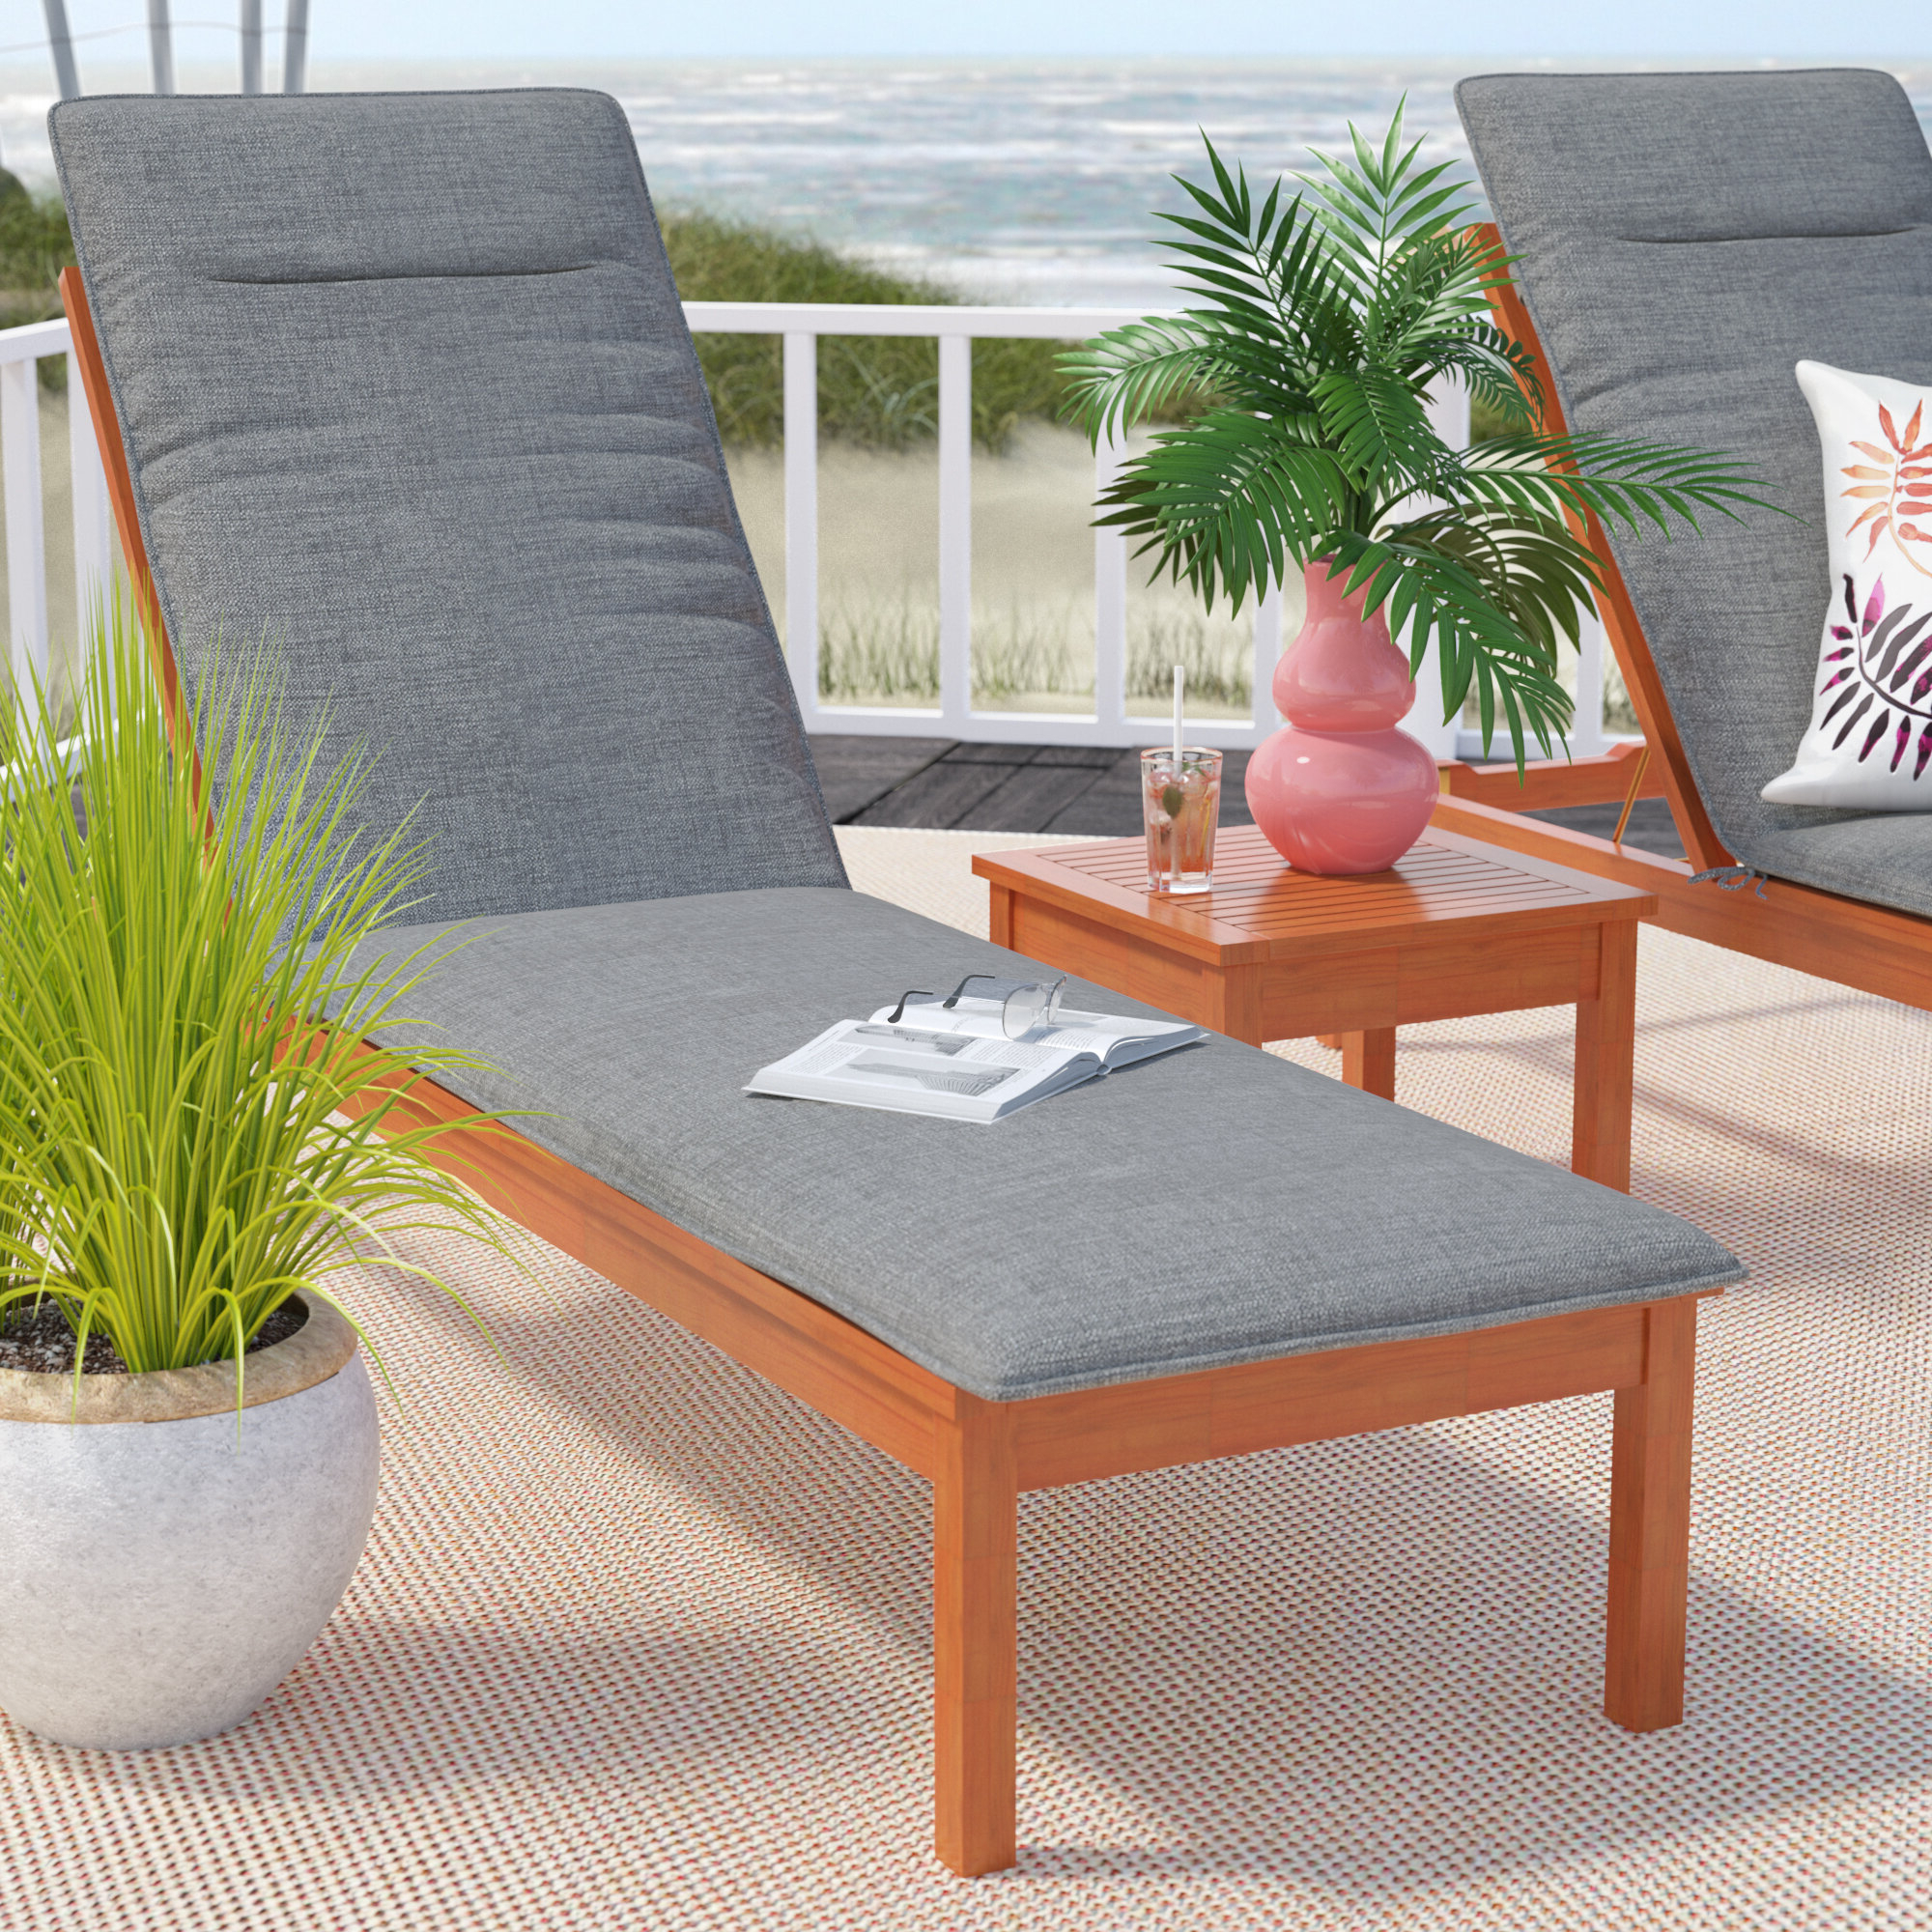 Famous Cape Coral Outdoor Chaise Lounges With Cushion Within Sol 72 Outdoor Brighton Indoor/outdoor Chaise Lounge Cushion (View 19 of 25)